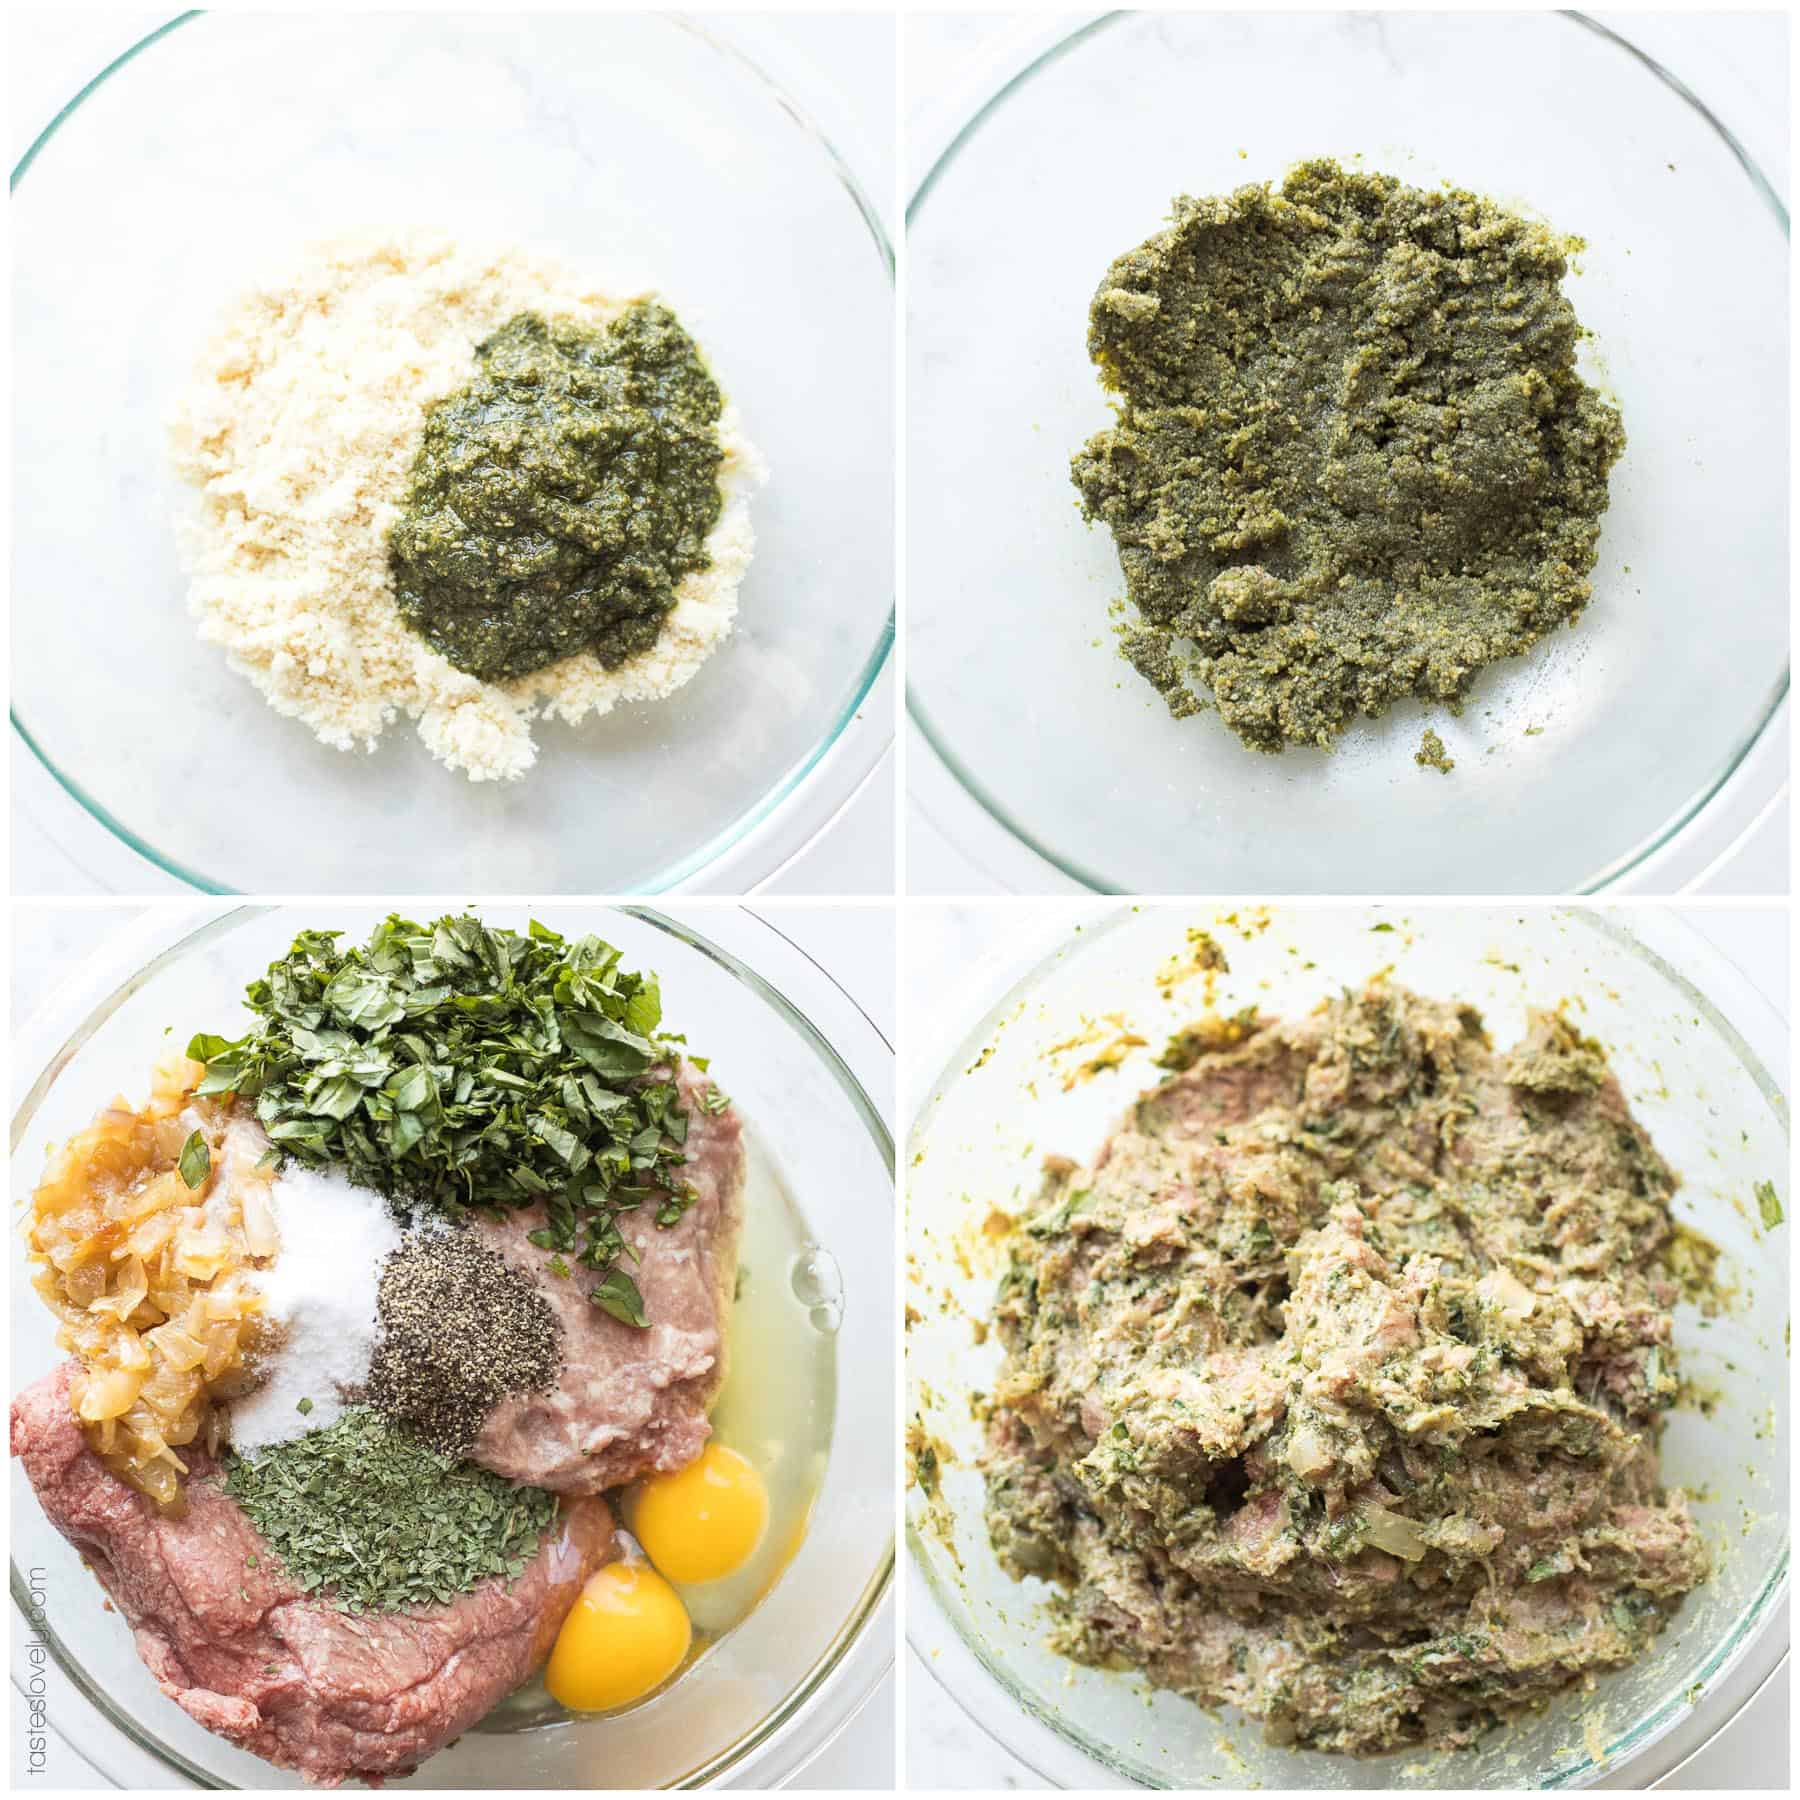 The steps and ingredients of making pesto meatballs